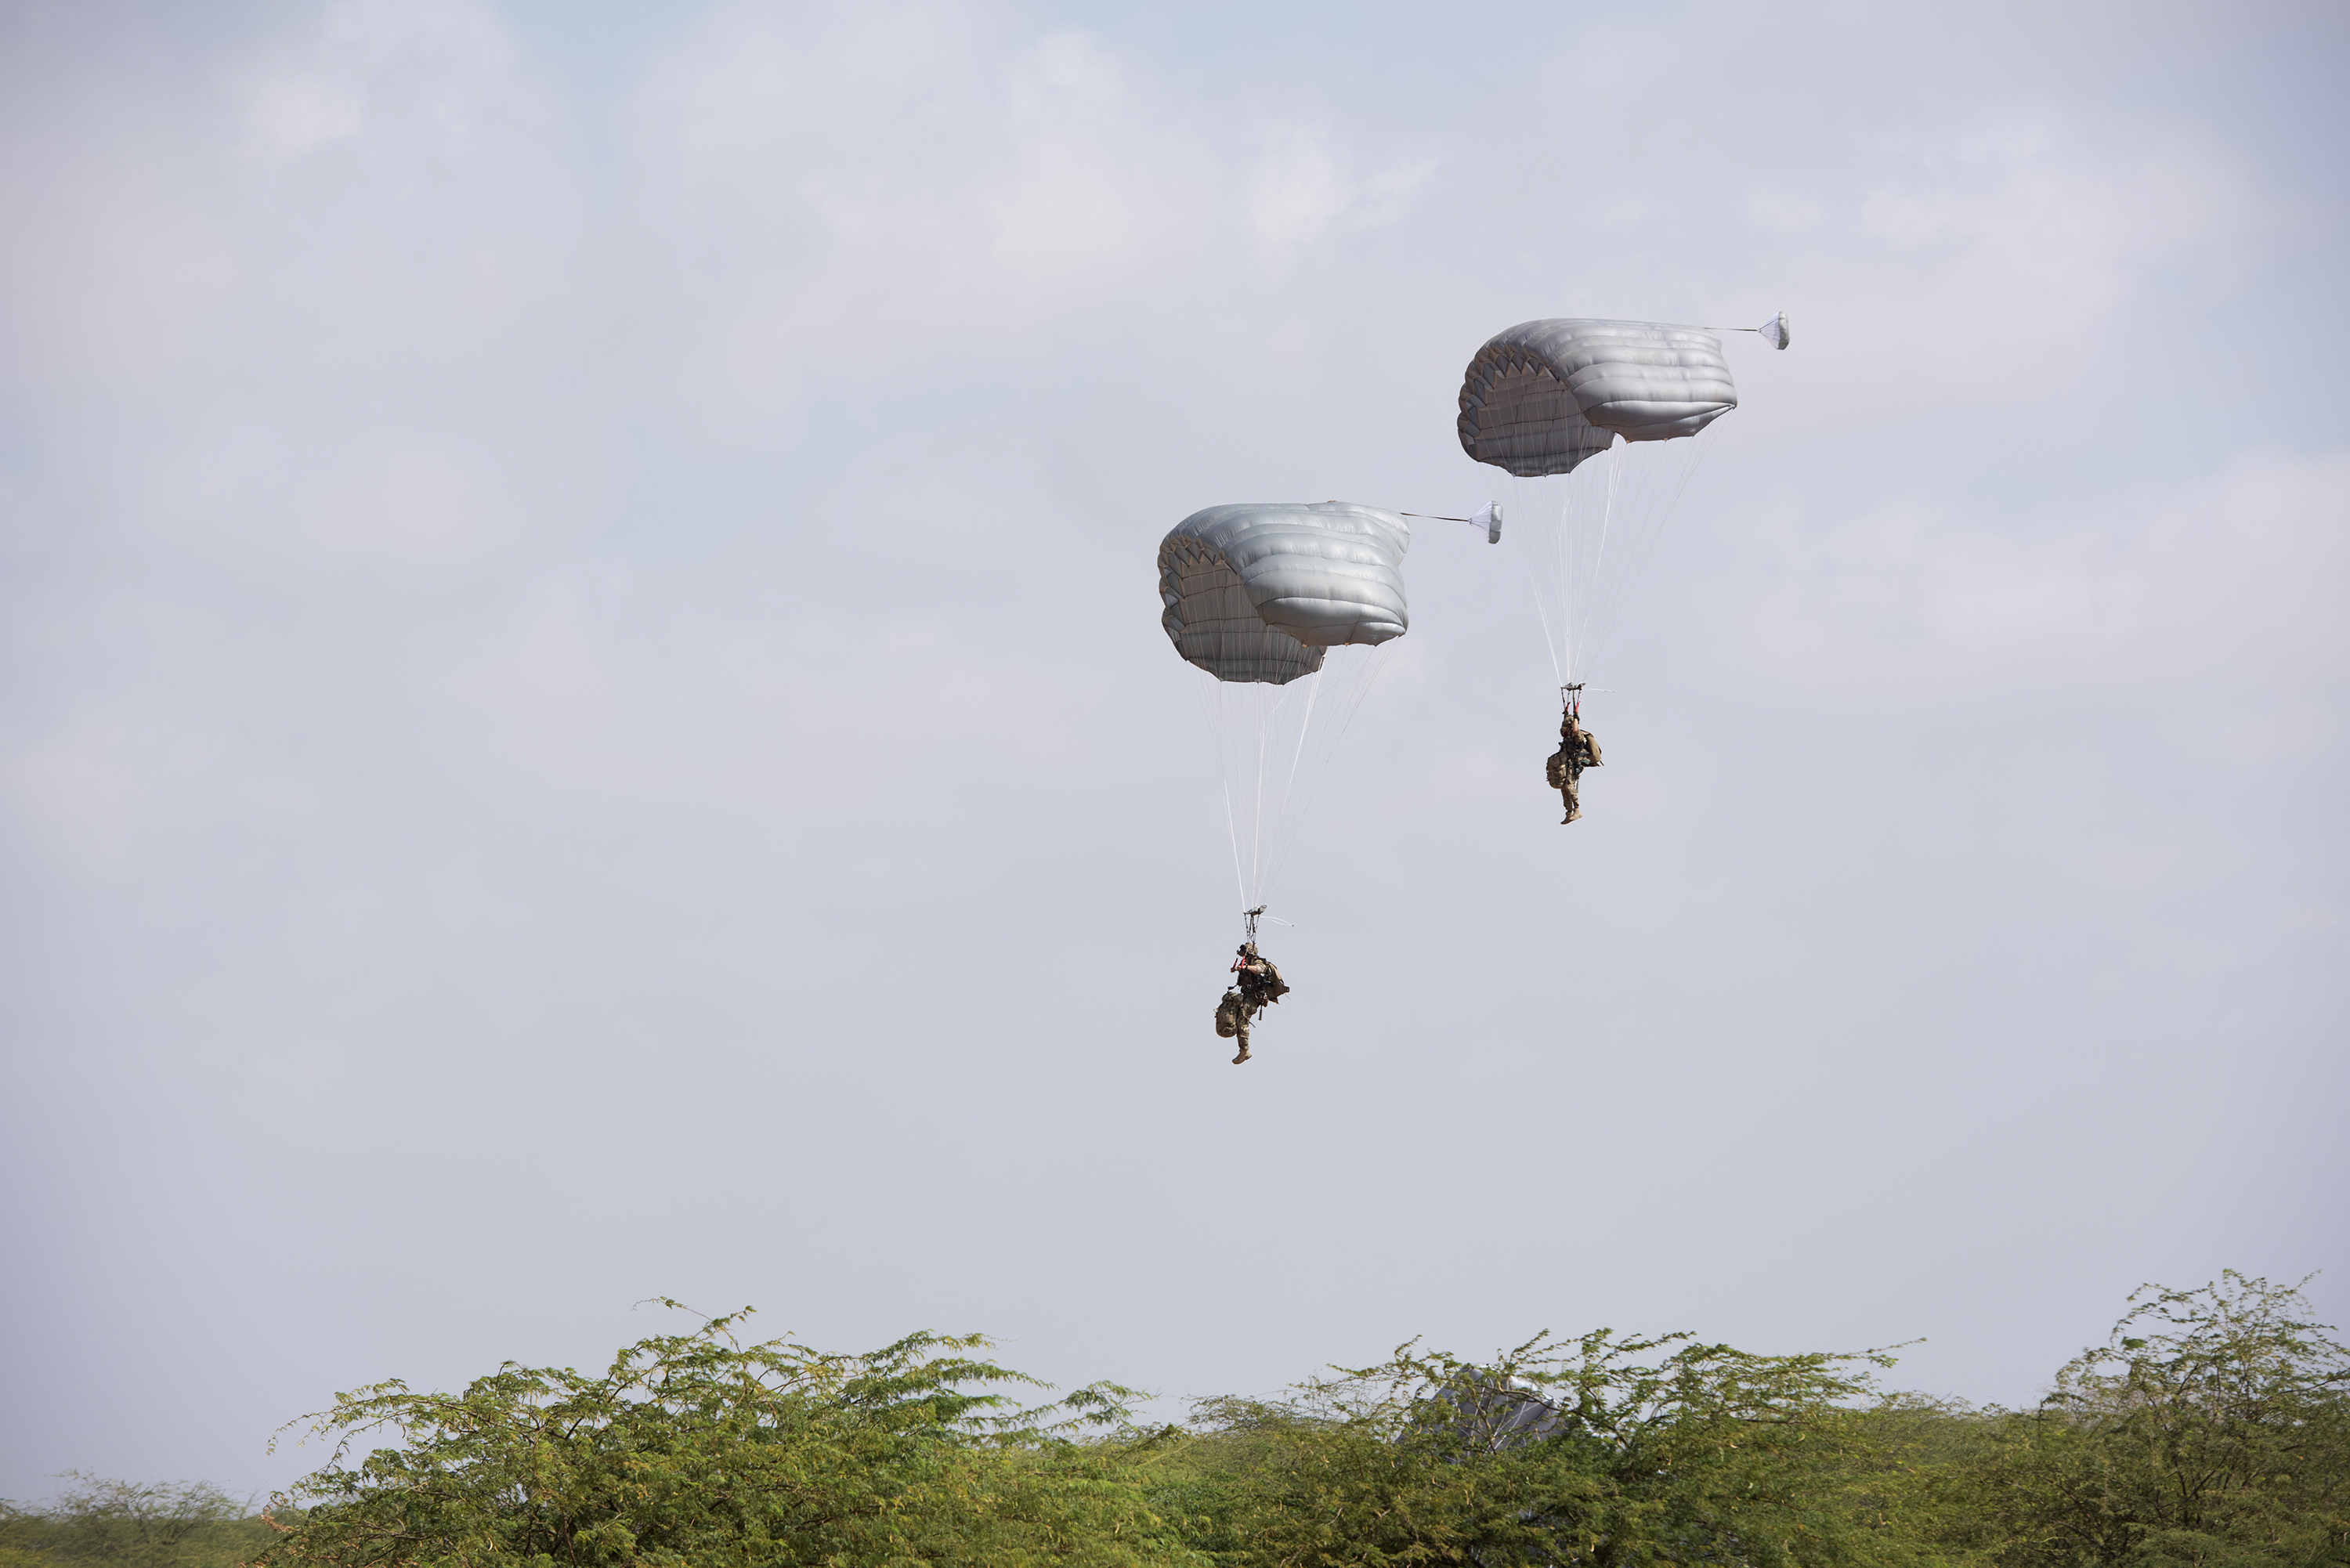 U.S. Air Force Pararescuemen from the 82nd Expeditionary Rescue Squadron participate in a high altitude, low-opening free-fall jump in Djibouti City, Djibouti, April 24, 2018. The free-fall jump was conducted as part of a joint training exercise. (U.S. Air National Guard photo by Master Sgt. Sarah Mattison)